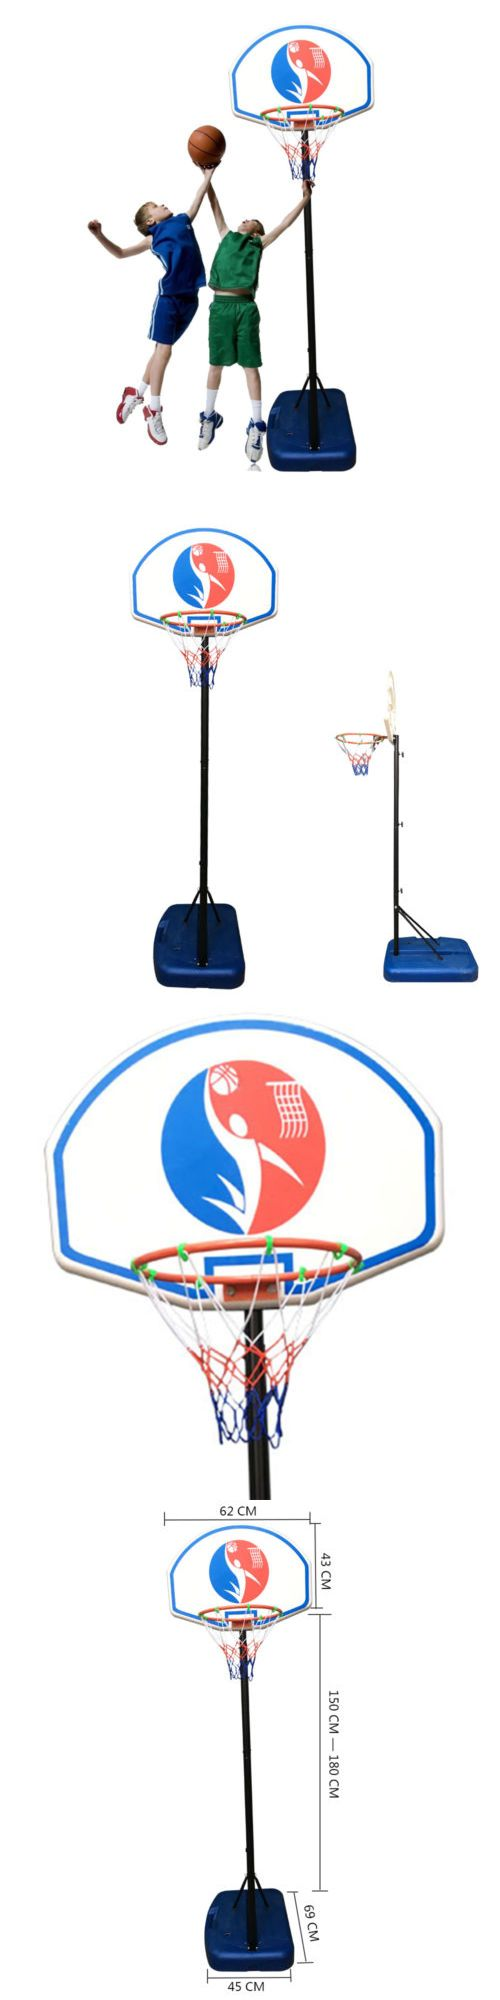 Basketball: 6Ft Adjustable Basketball Hoop System Stand Outdoor Net Goal For Youth Kids -> BUY IT NOW ONLY: $33.99 on eBay!